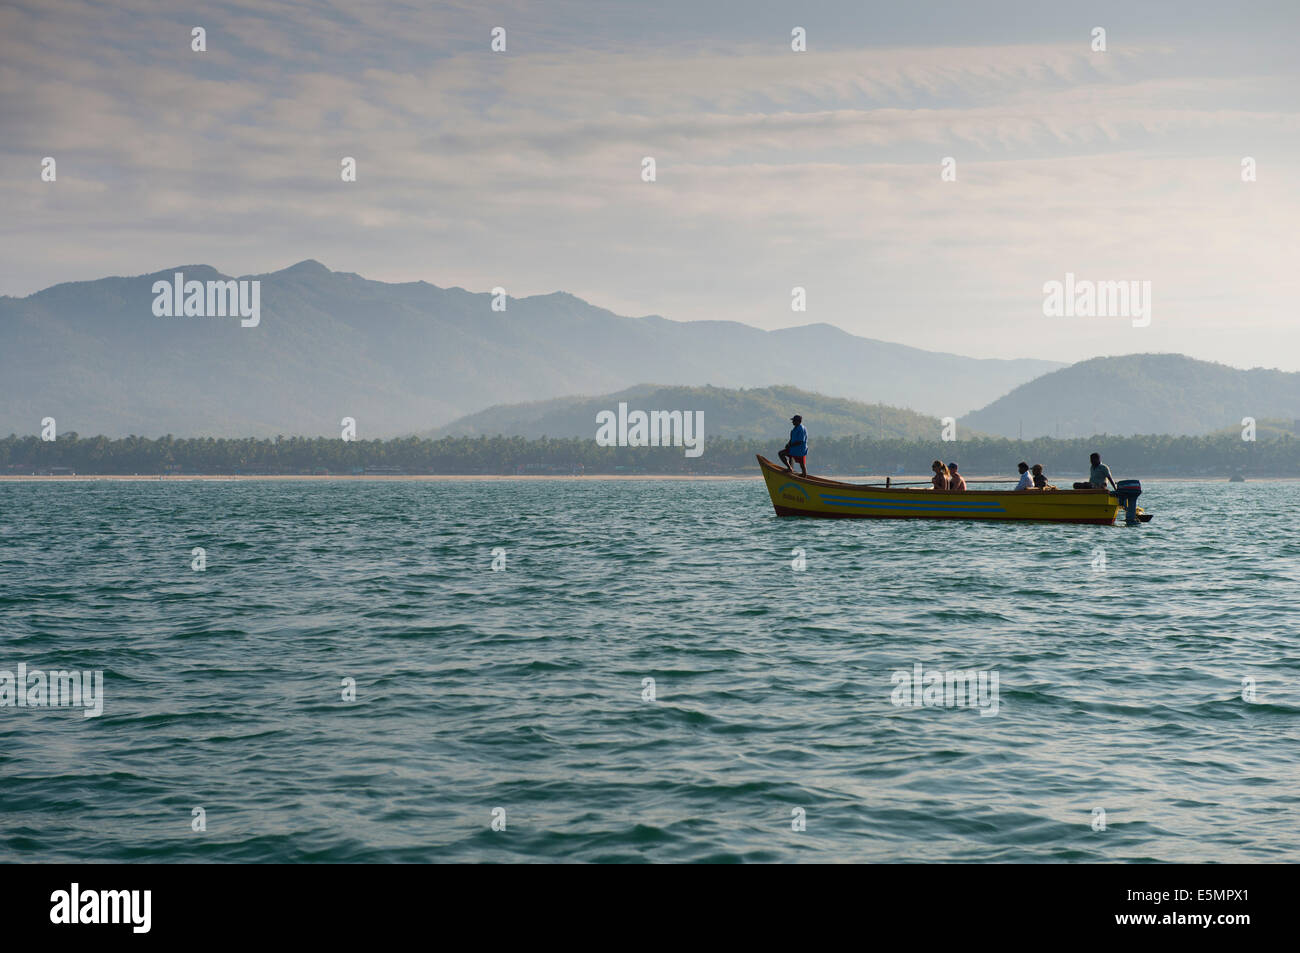 People in a boat Dolphin spotting. Palolem, Goa India - Stock Image